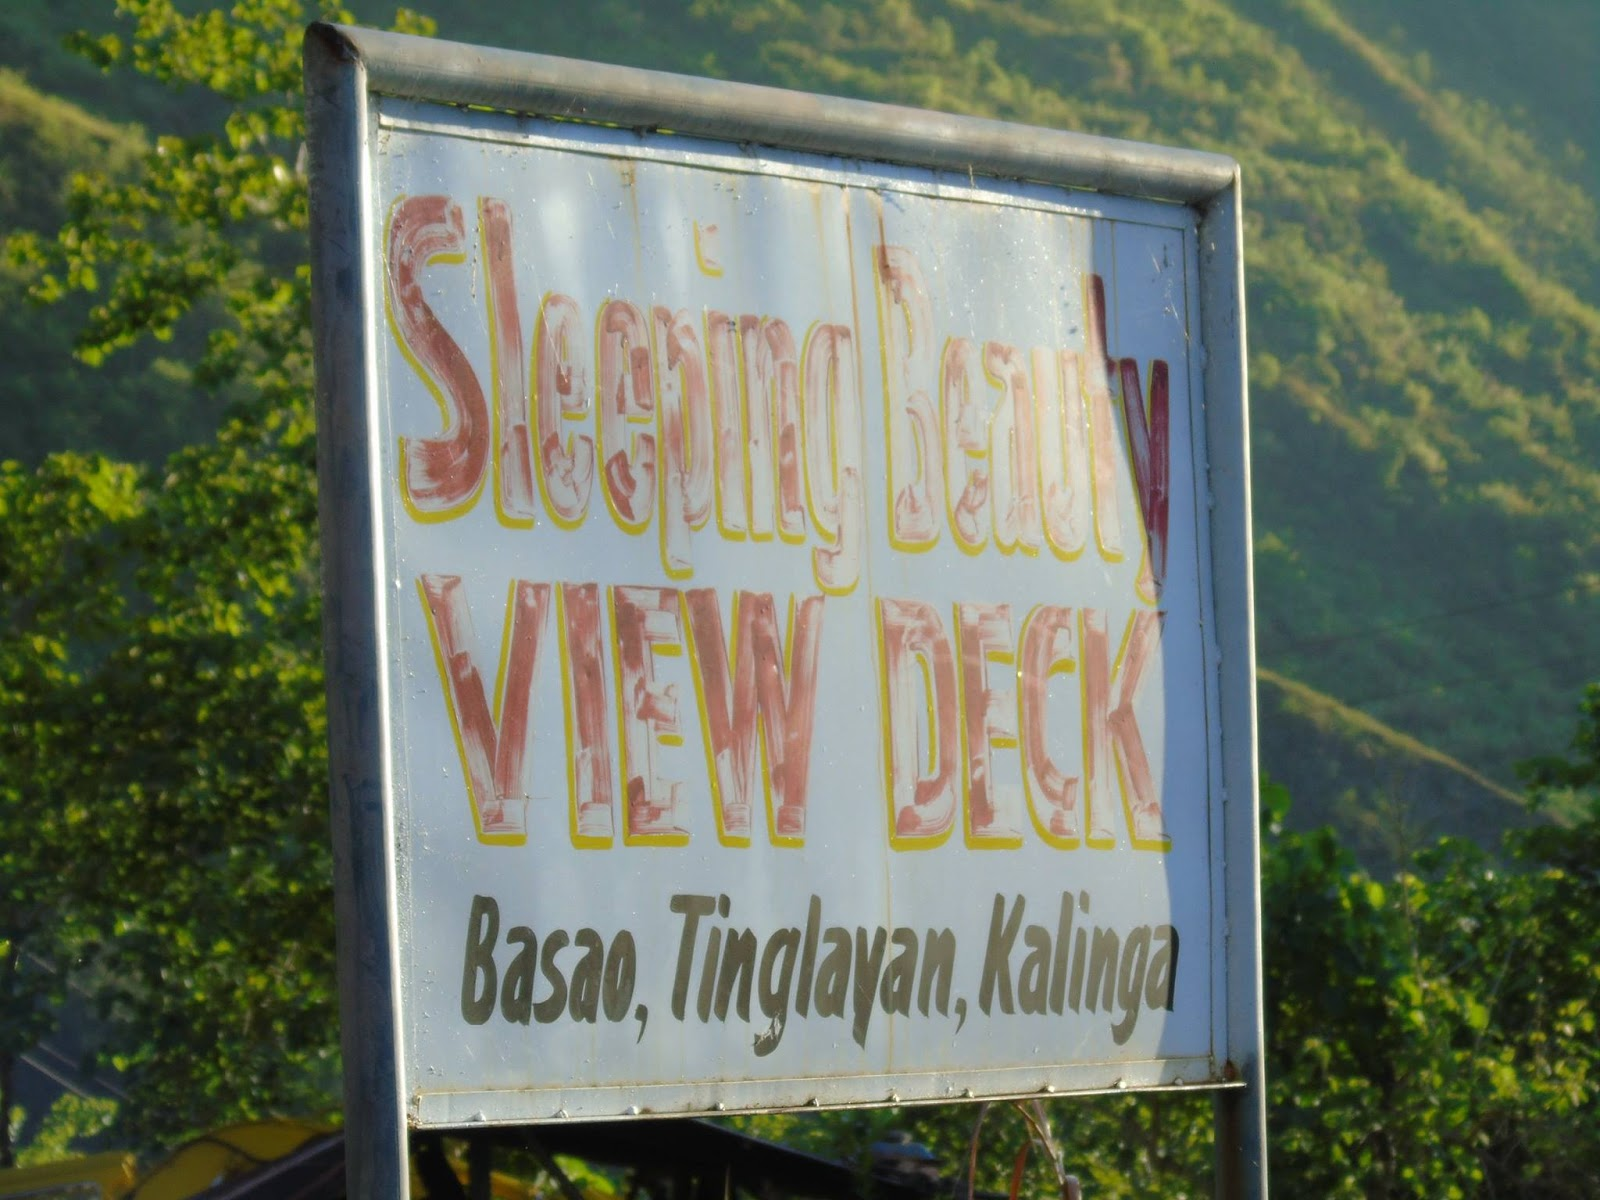 On the way to Tinglayan village proper, you will see a spot where you can see Mount Mating-oy Dinayao in its full glory